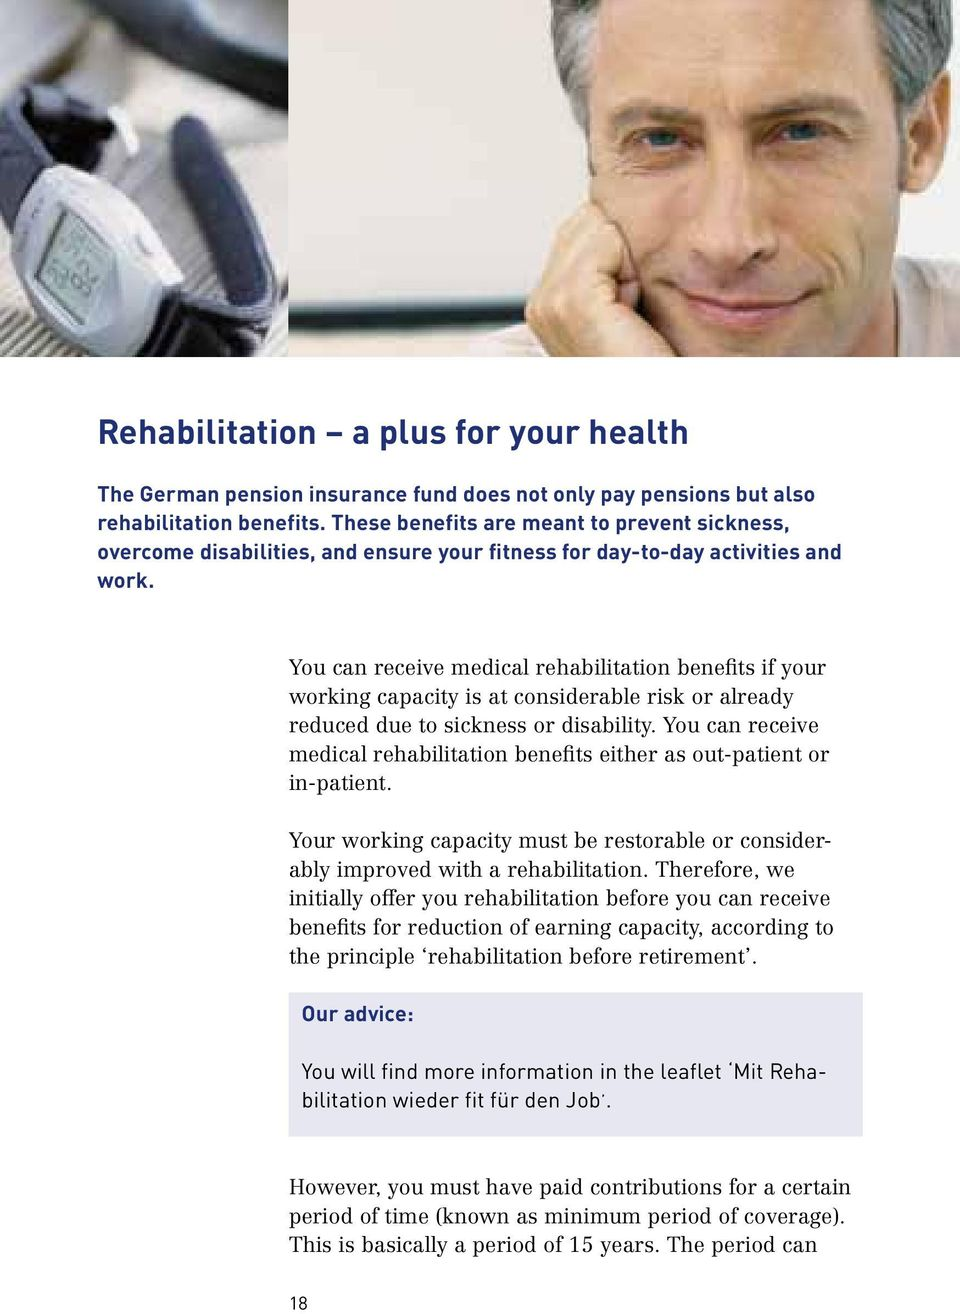 You can receive medical rehabilitation benefits if your working capacity is at considerable risk or already reduced due to sickness or disability.